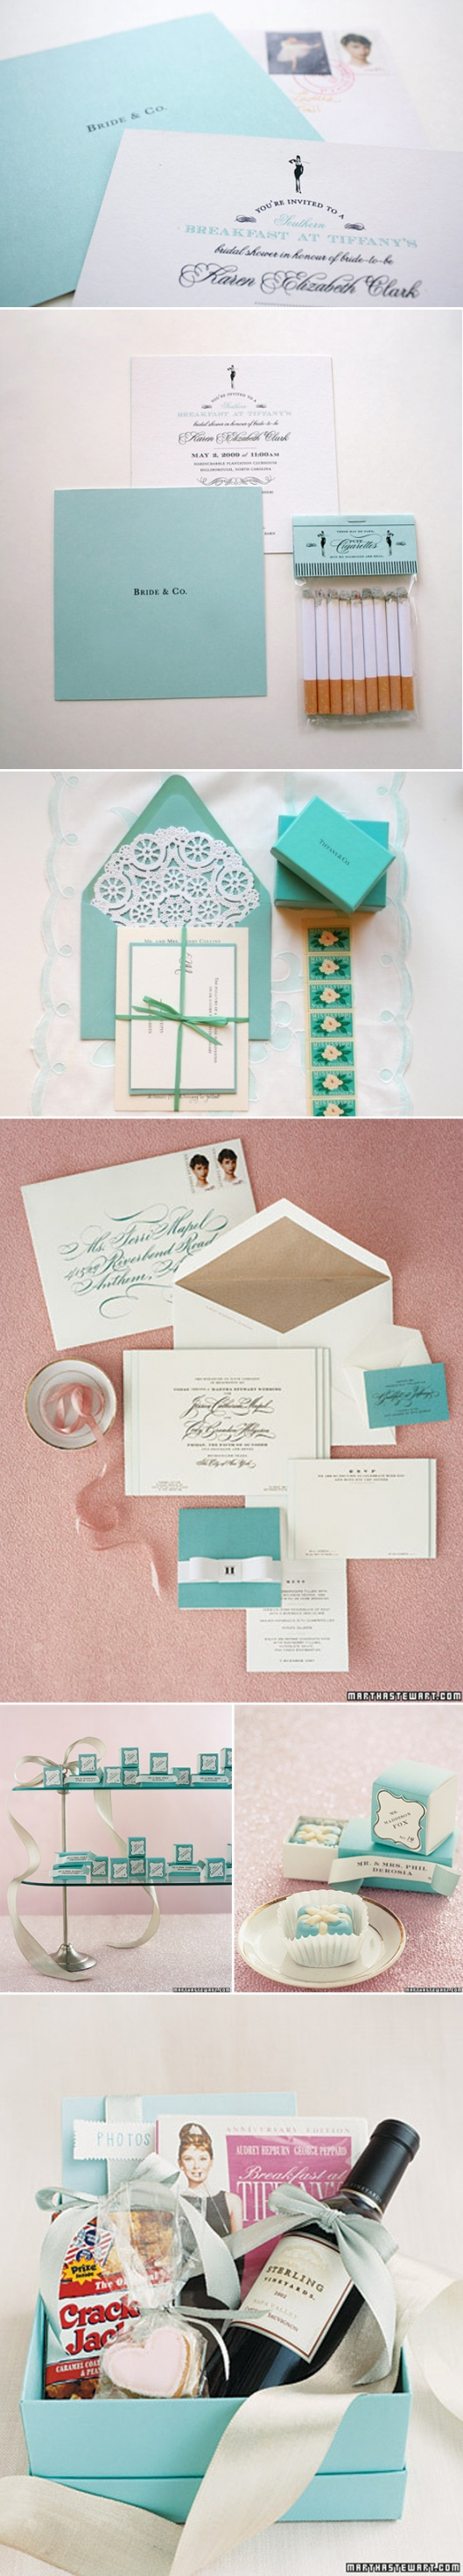 wedding invitations gifts%0A can actually only dream of having a bridal shower this incredible